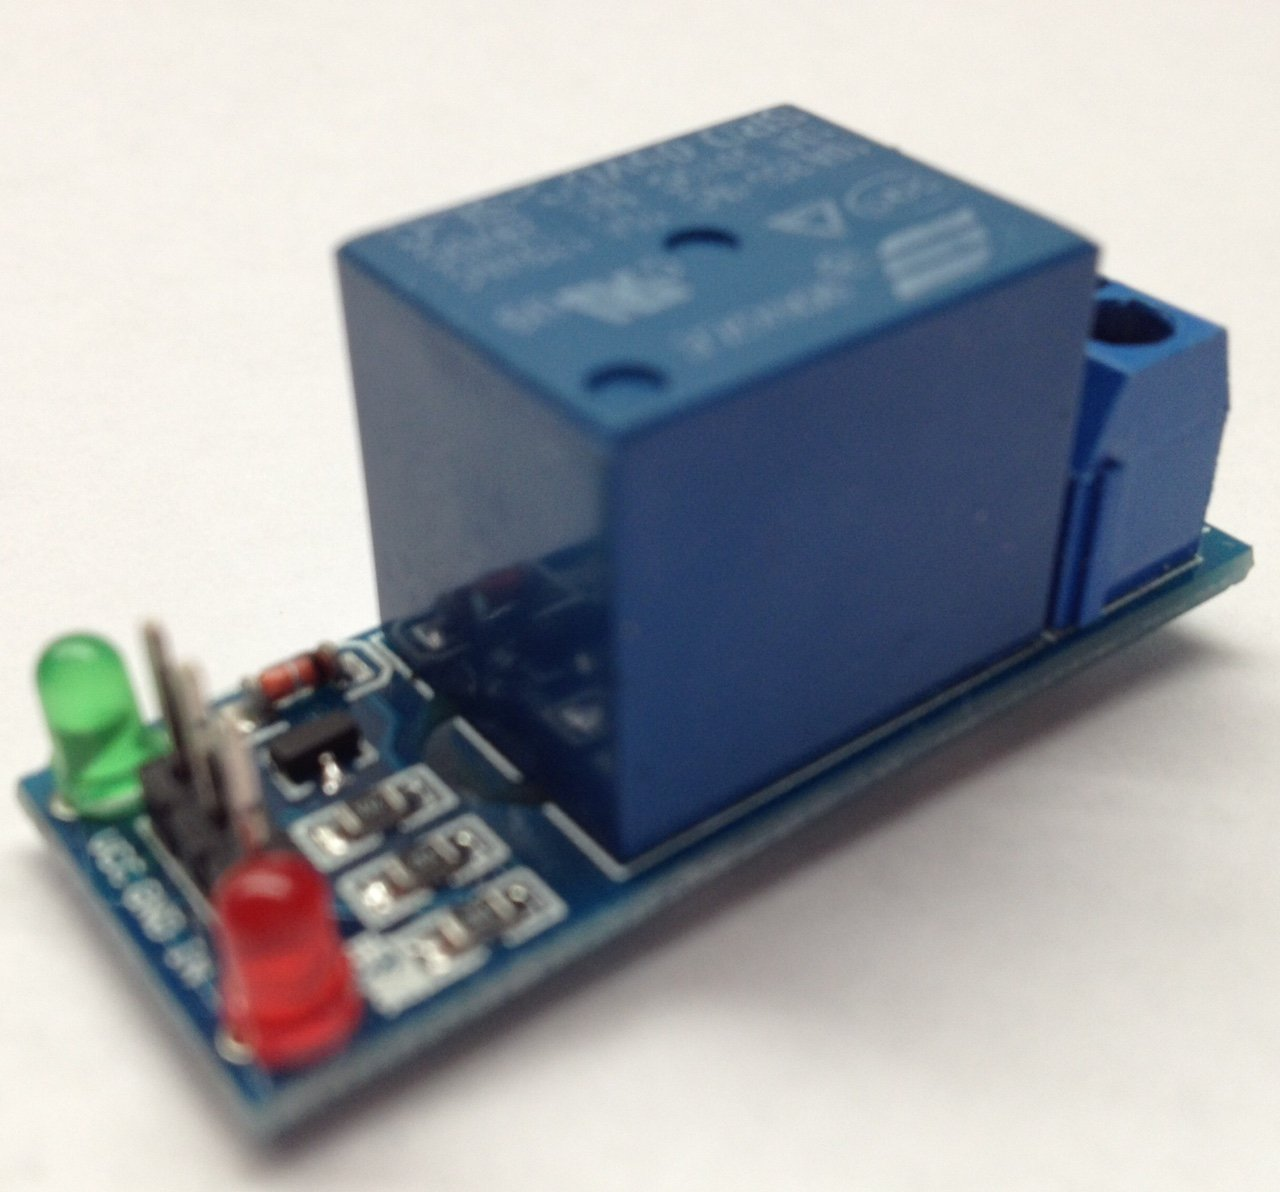 5v Dc 1channel Low Level Trigger Power Relay Module 2 Electronics Technology 5vdc To 12vdc Lt1070 Boost Converter Circuit Pack Srd 05vdc Sl C Rbtmkr Computers Accessories